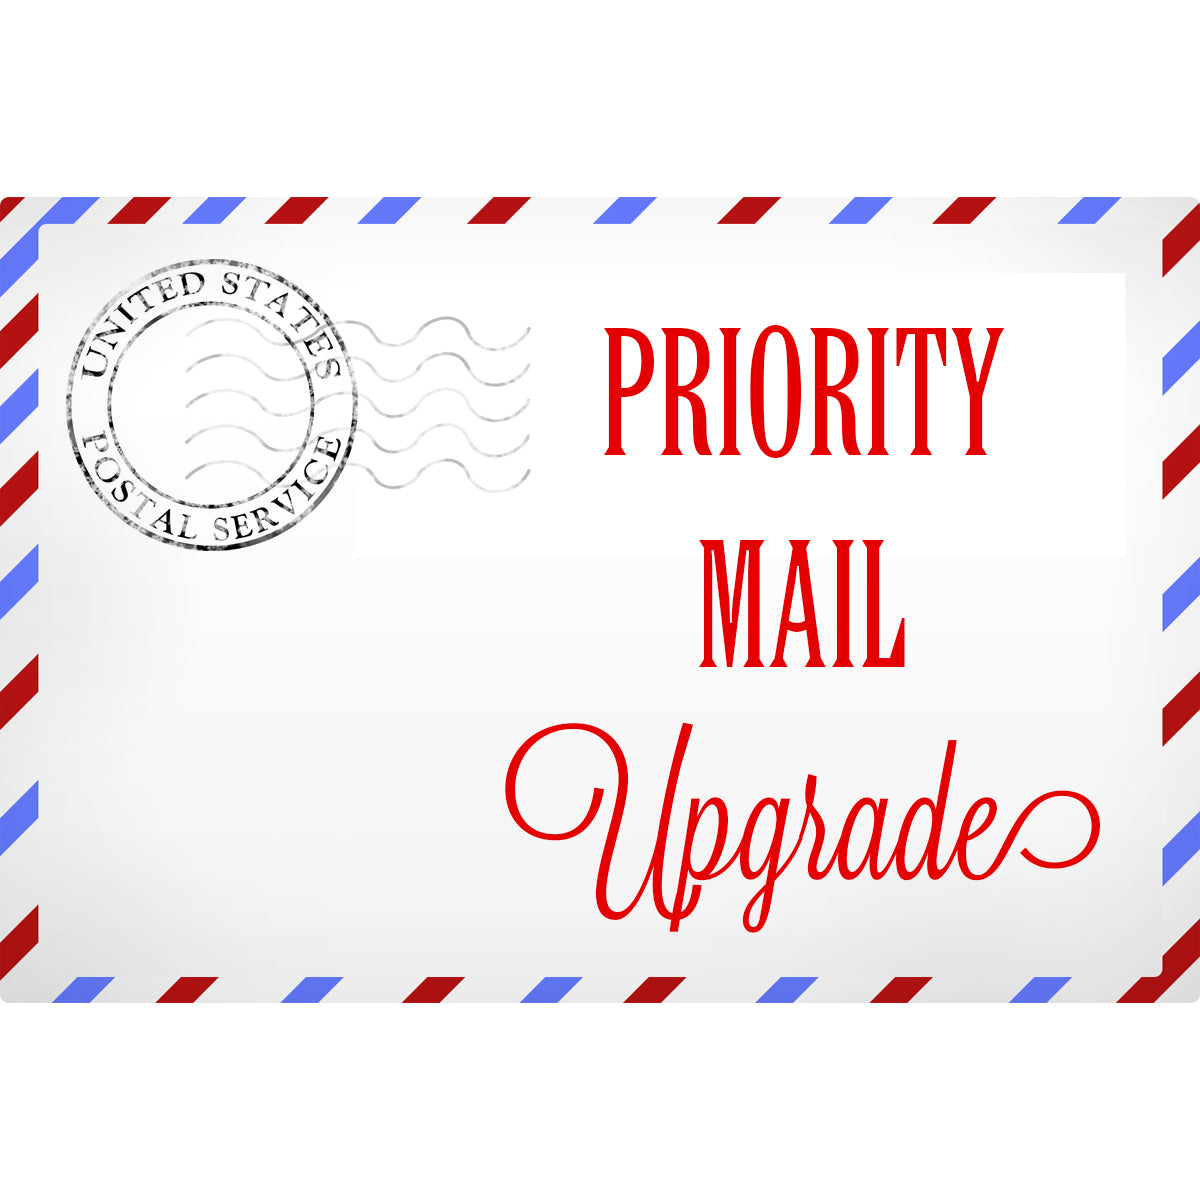 Priority Mail Upgrade - Hermie's Kitchen